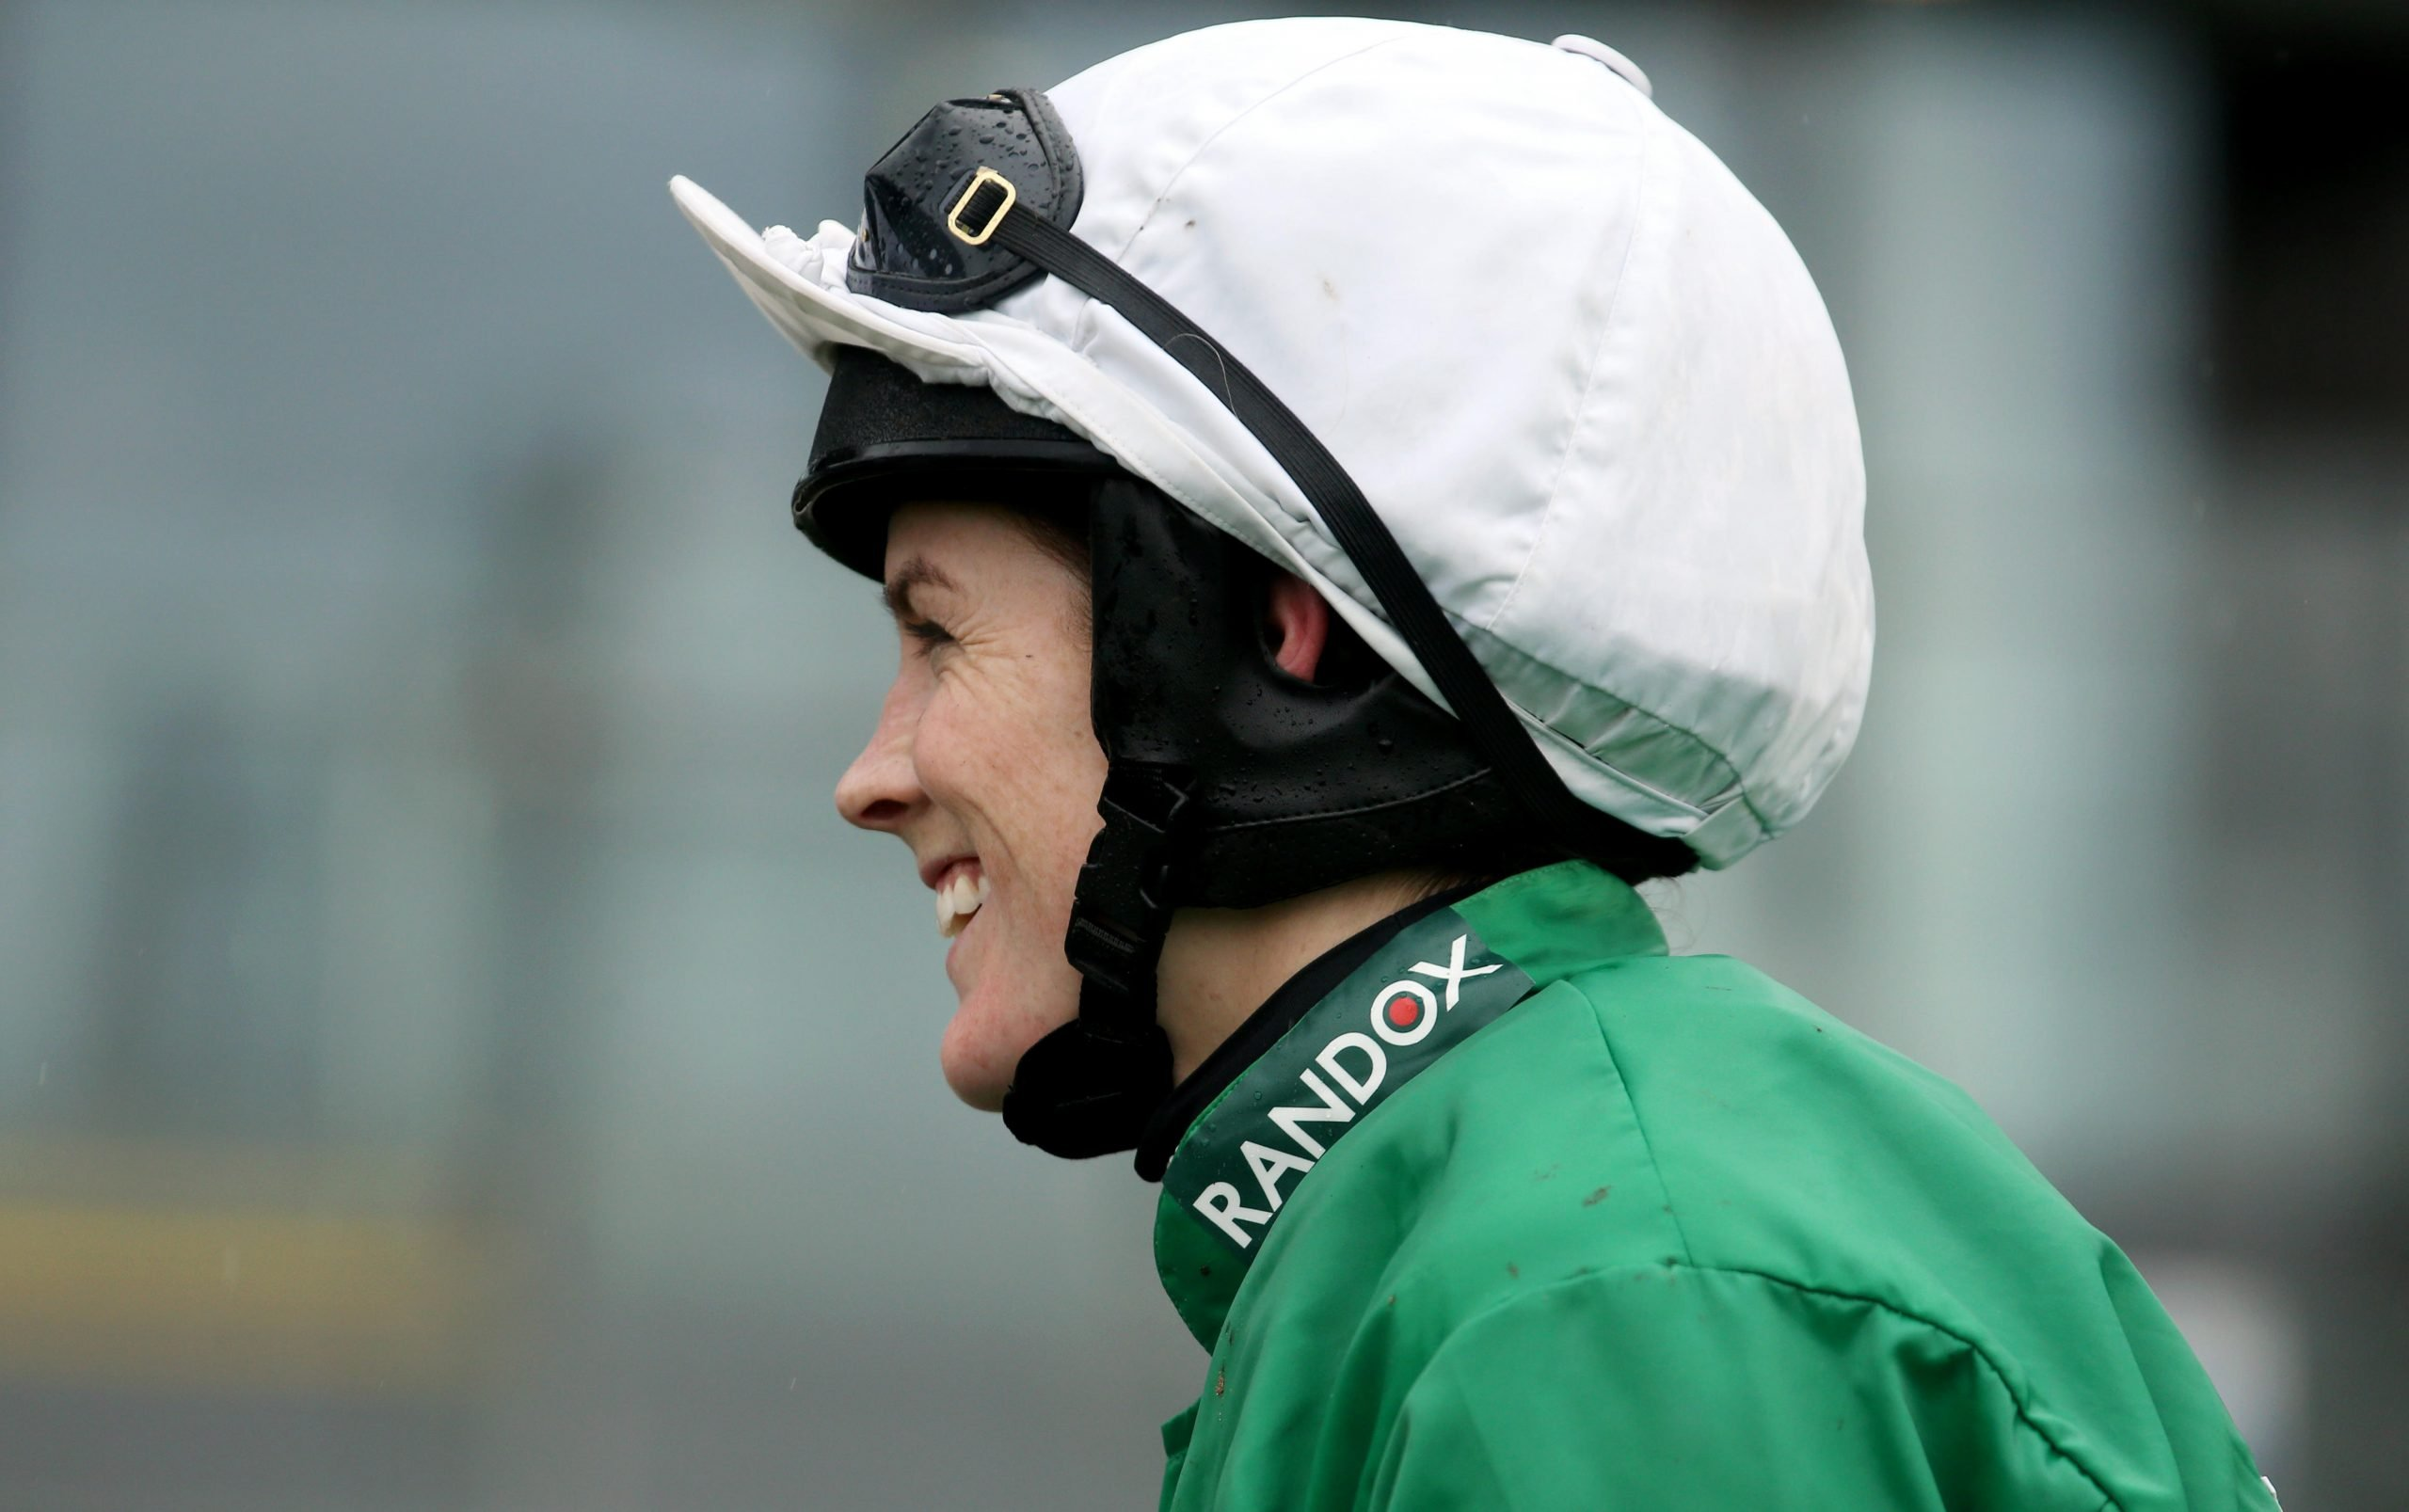 T3GY49 Jockey Rachael Blackmore celebrates winning the Close Brothers Red Rum Handicap Chase during Grand National Thursday of the 2019 Randox Health Grand National Festival at Aintree Racecourse.